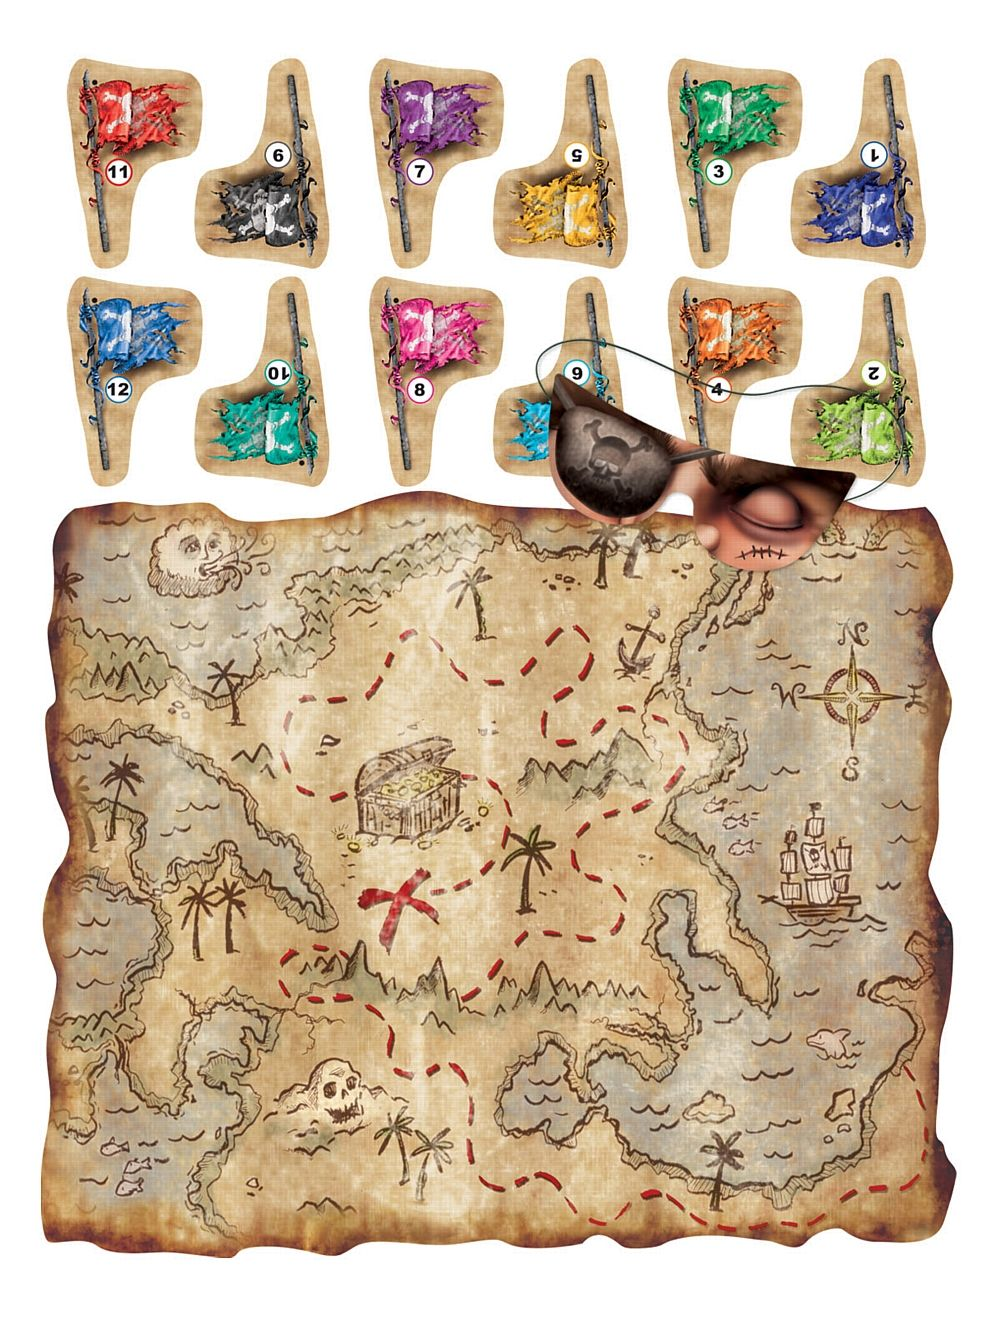 treasure map pirate party game code frgpi great party game for